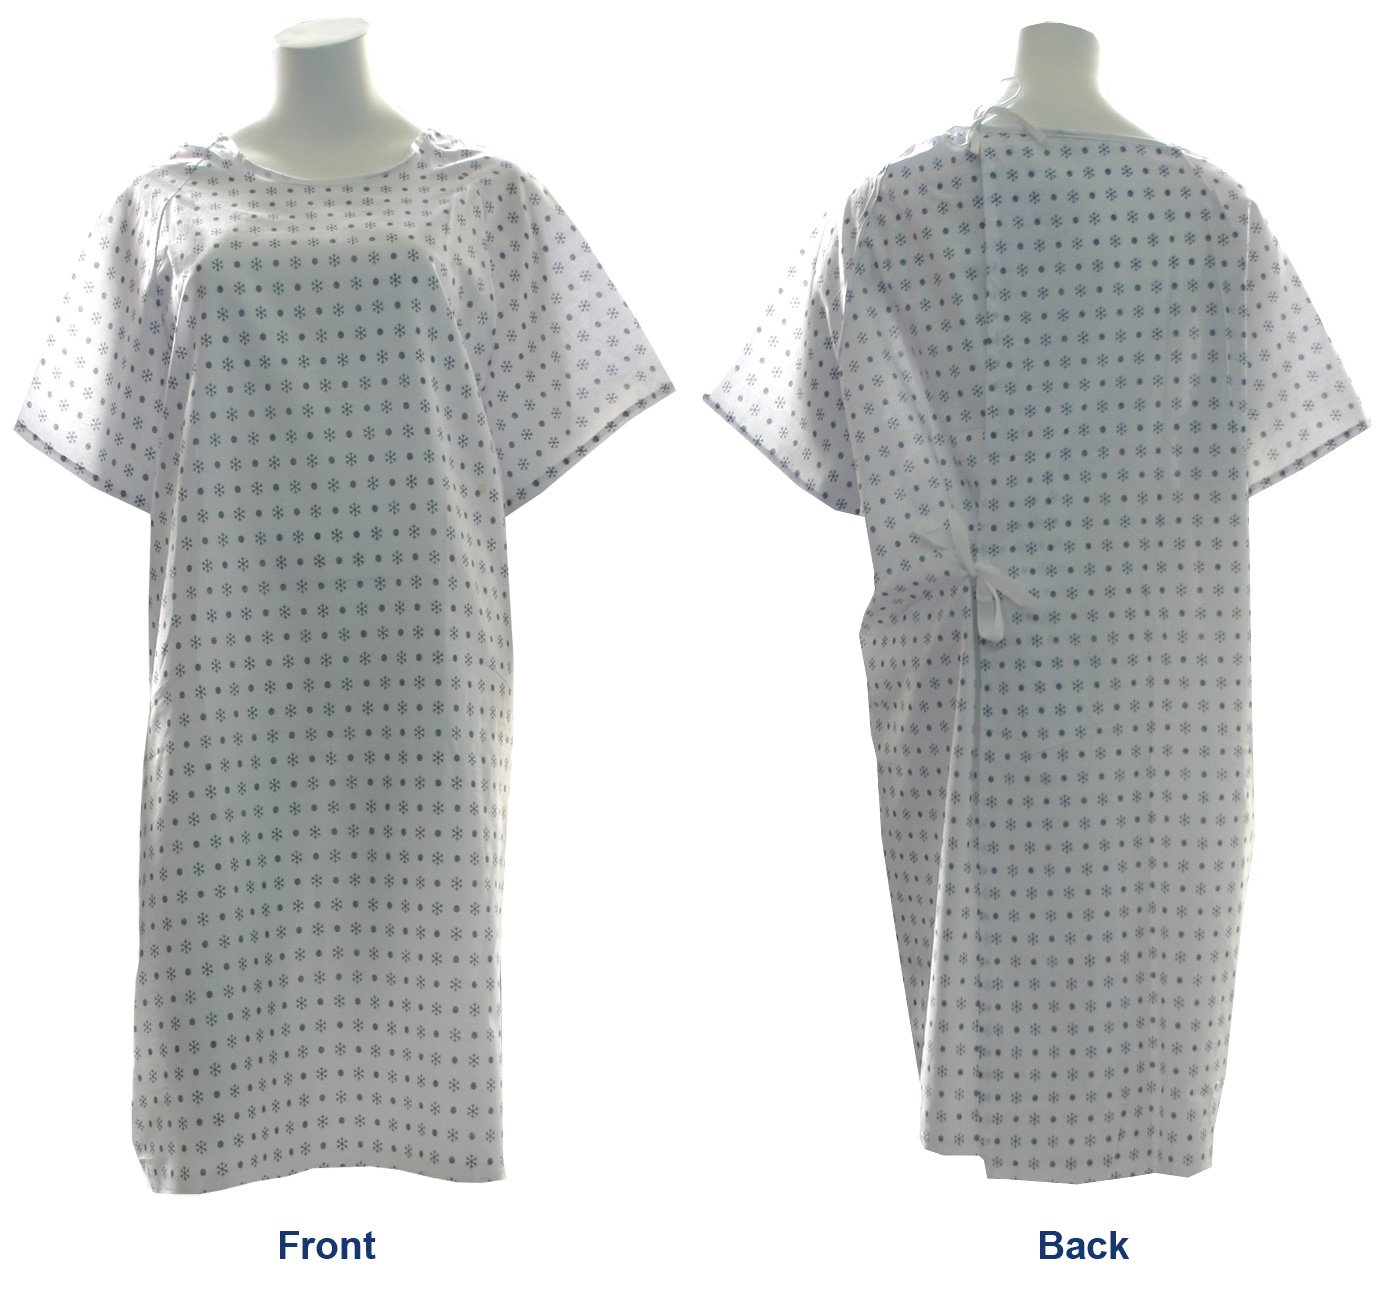 Snowflake Print Hospital Medical Gowns - Pack of 4